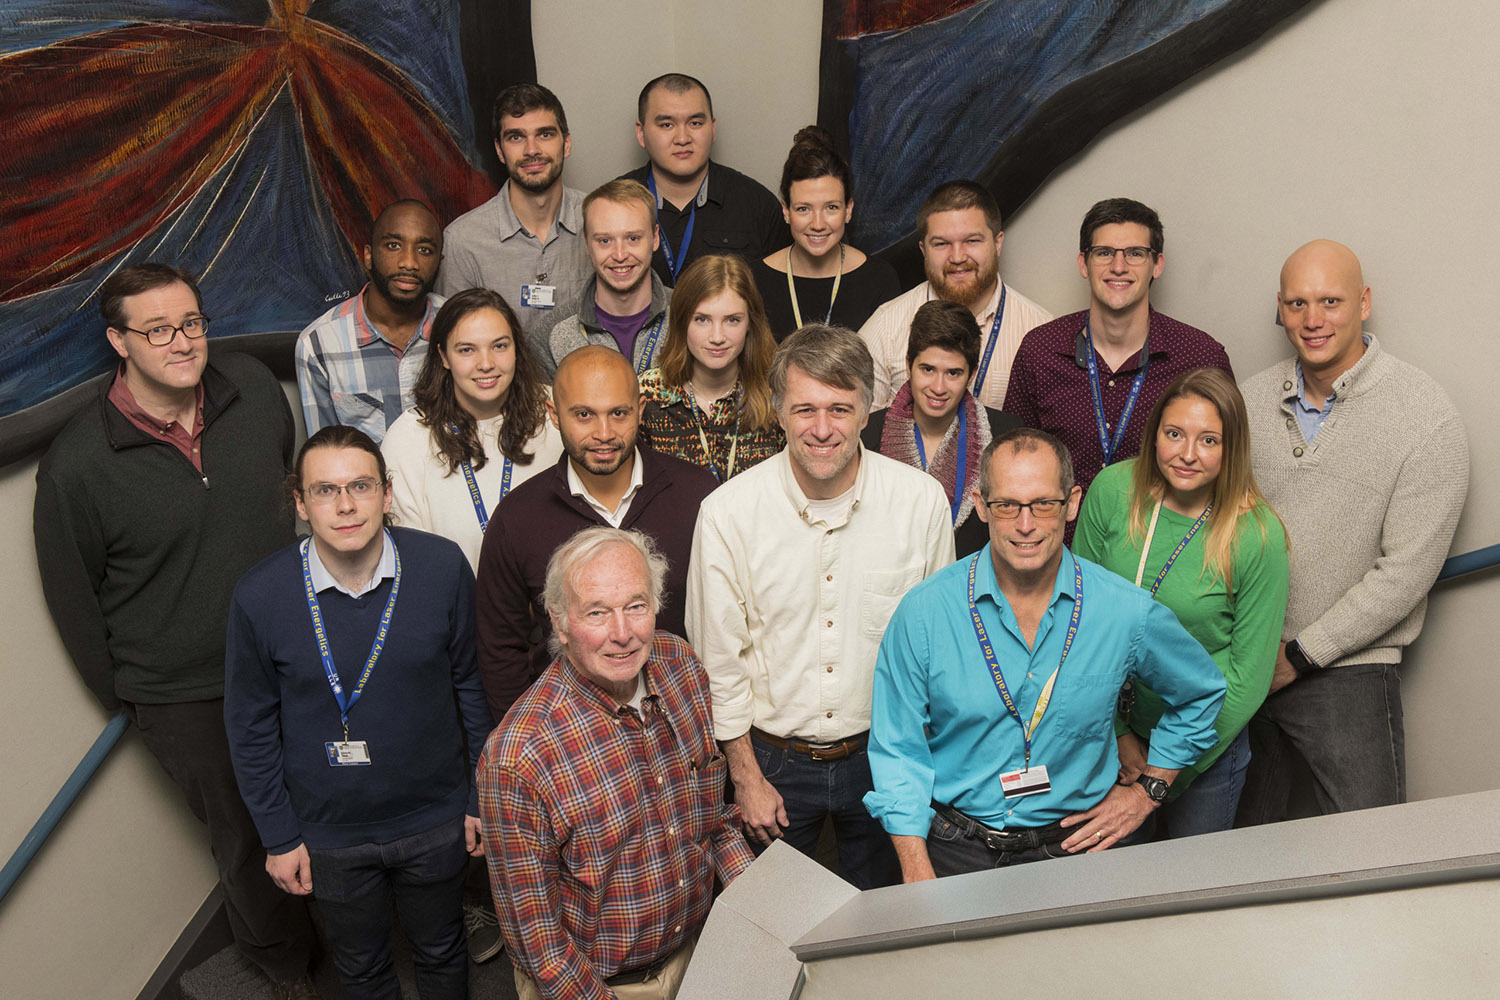 HEDP Experiments Group photo